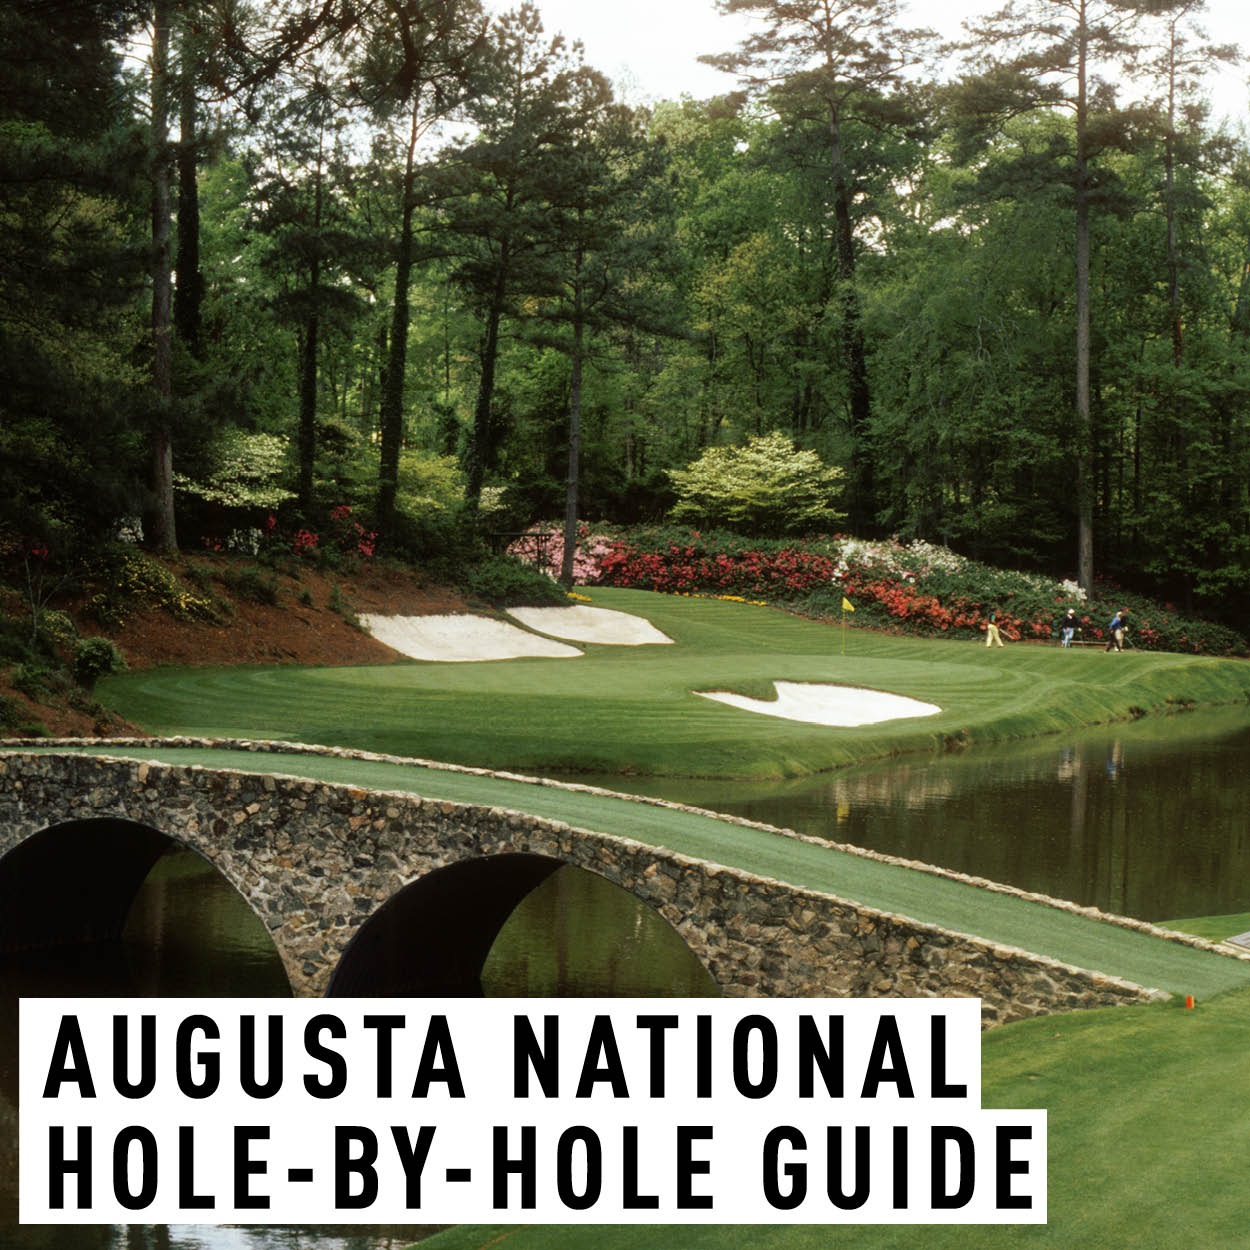 How Can I Play Augusta National?